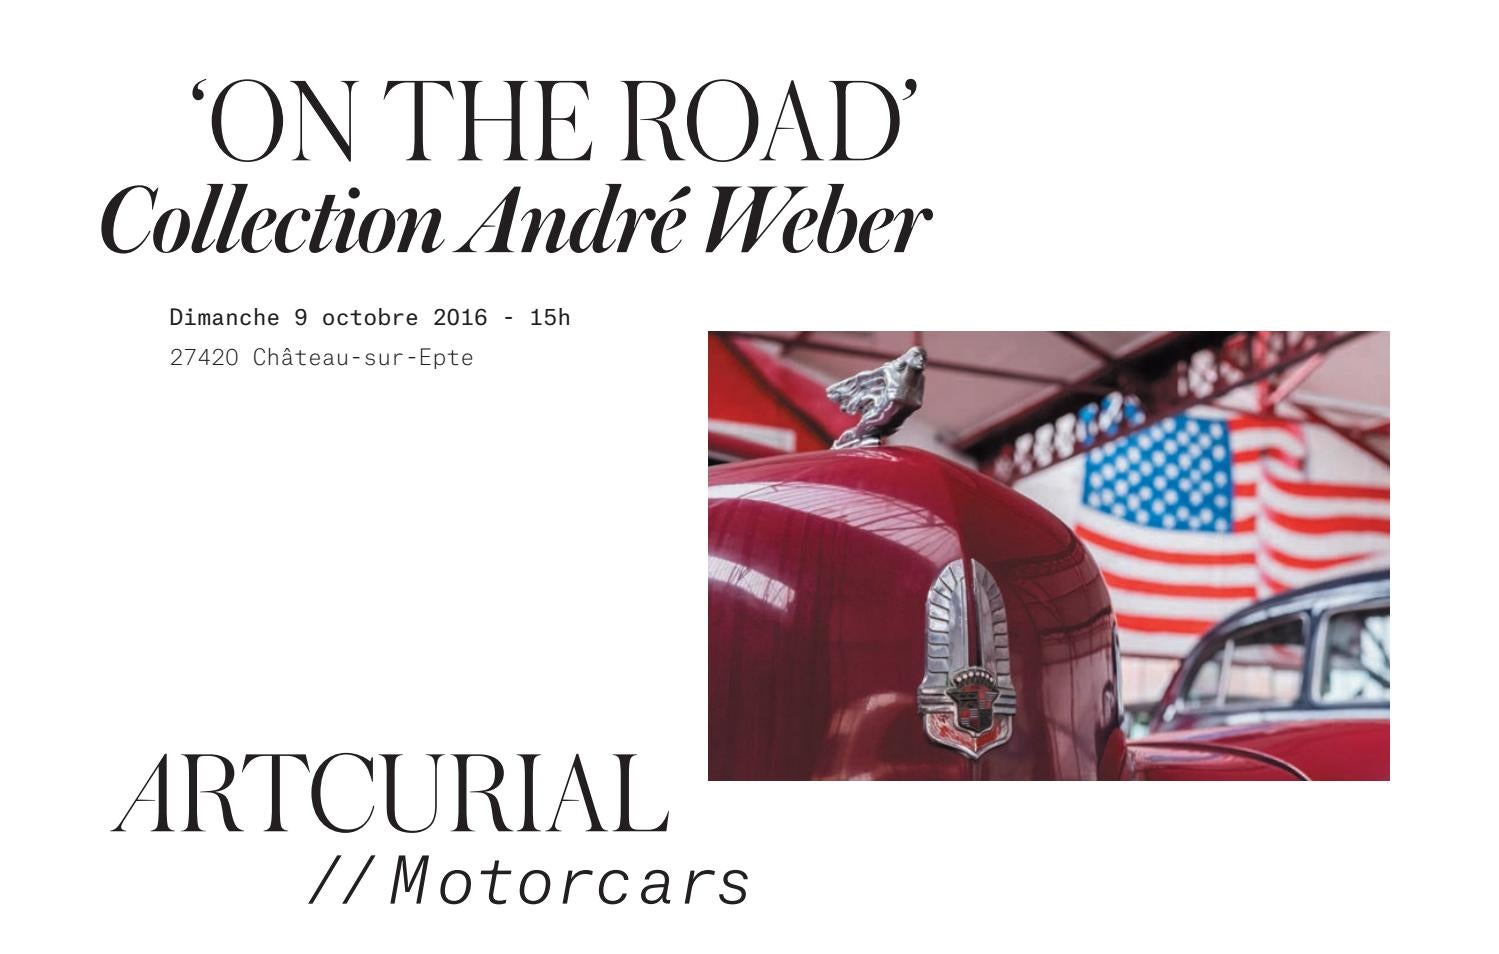 45a1abdacdb0d On The Road  Collection André Weber by Artcurial - issuu